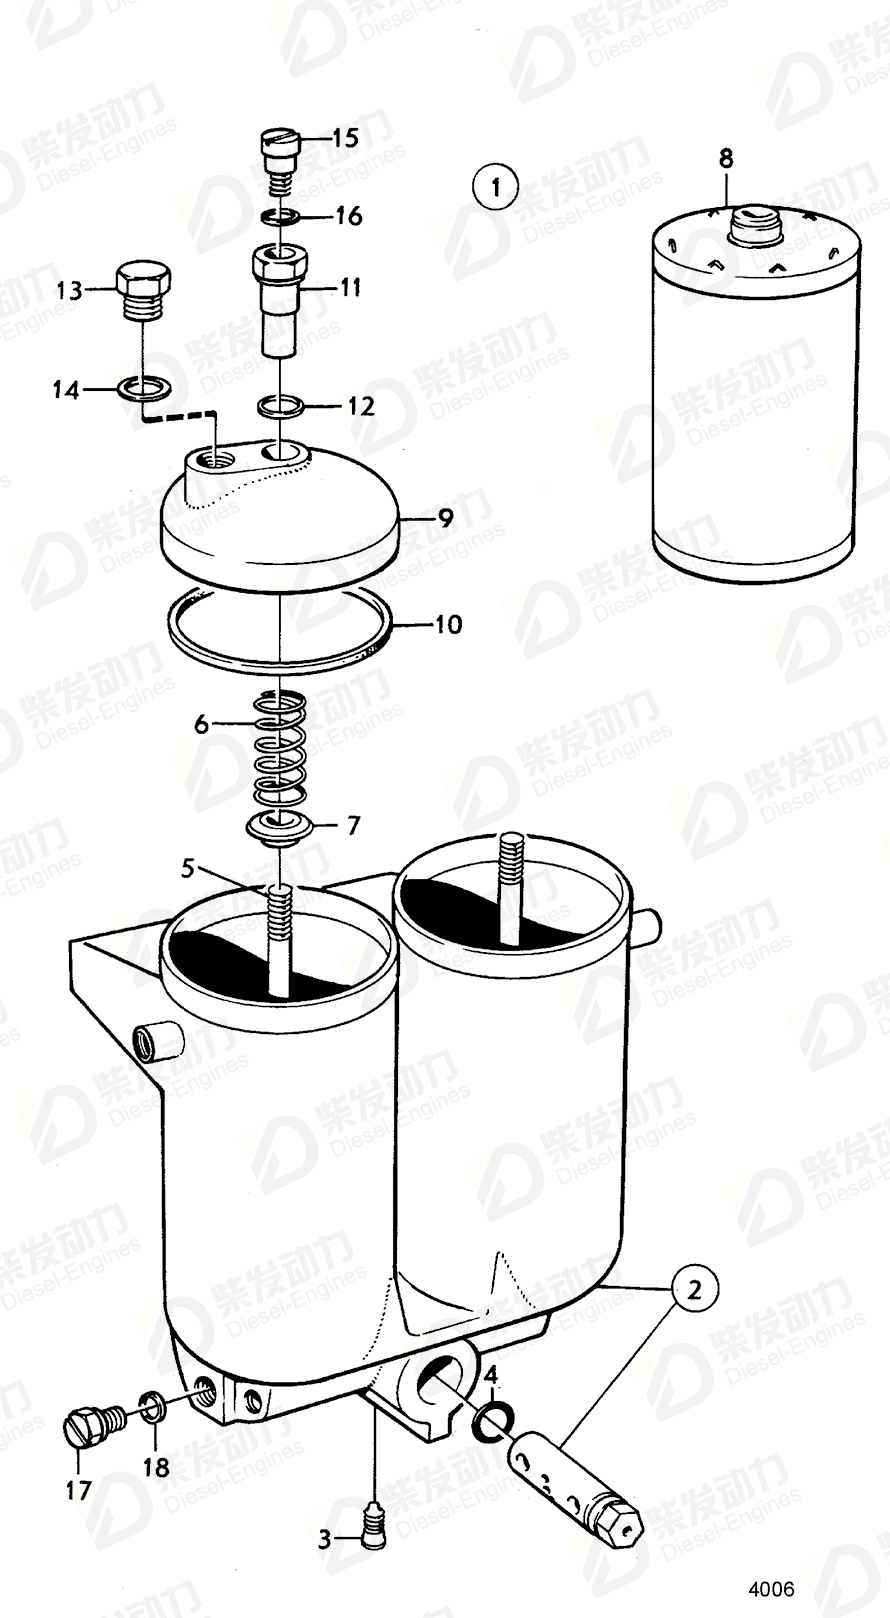 VOLVO Screw 843834 Drawing